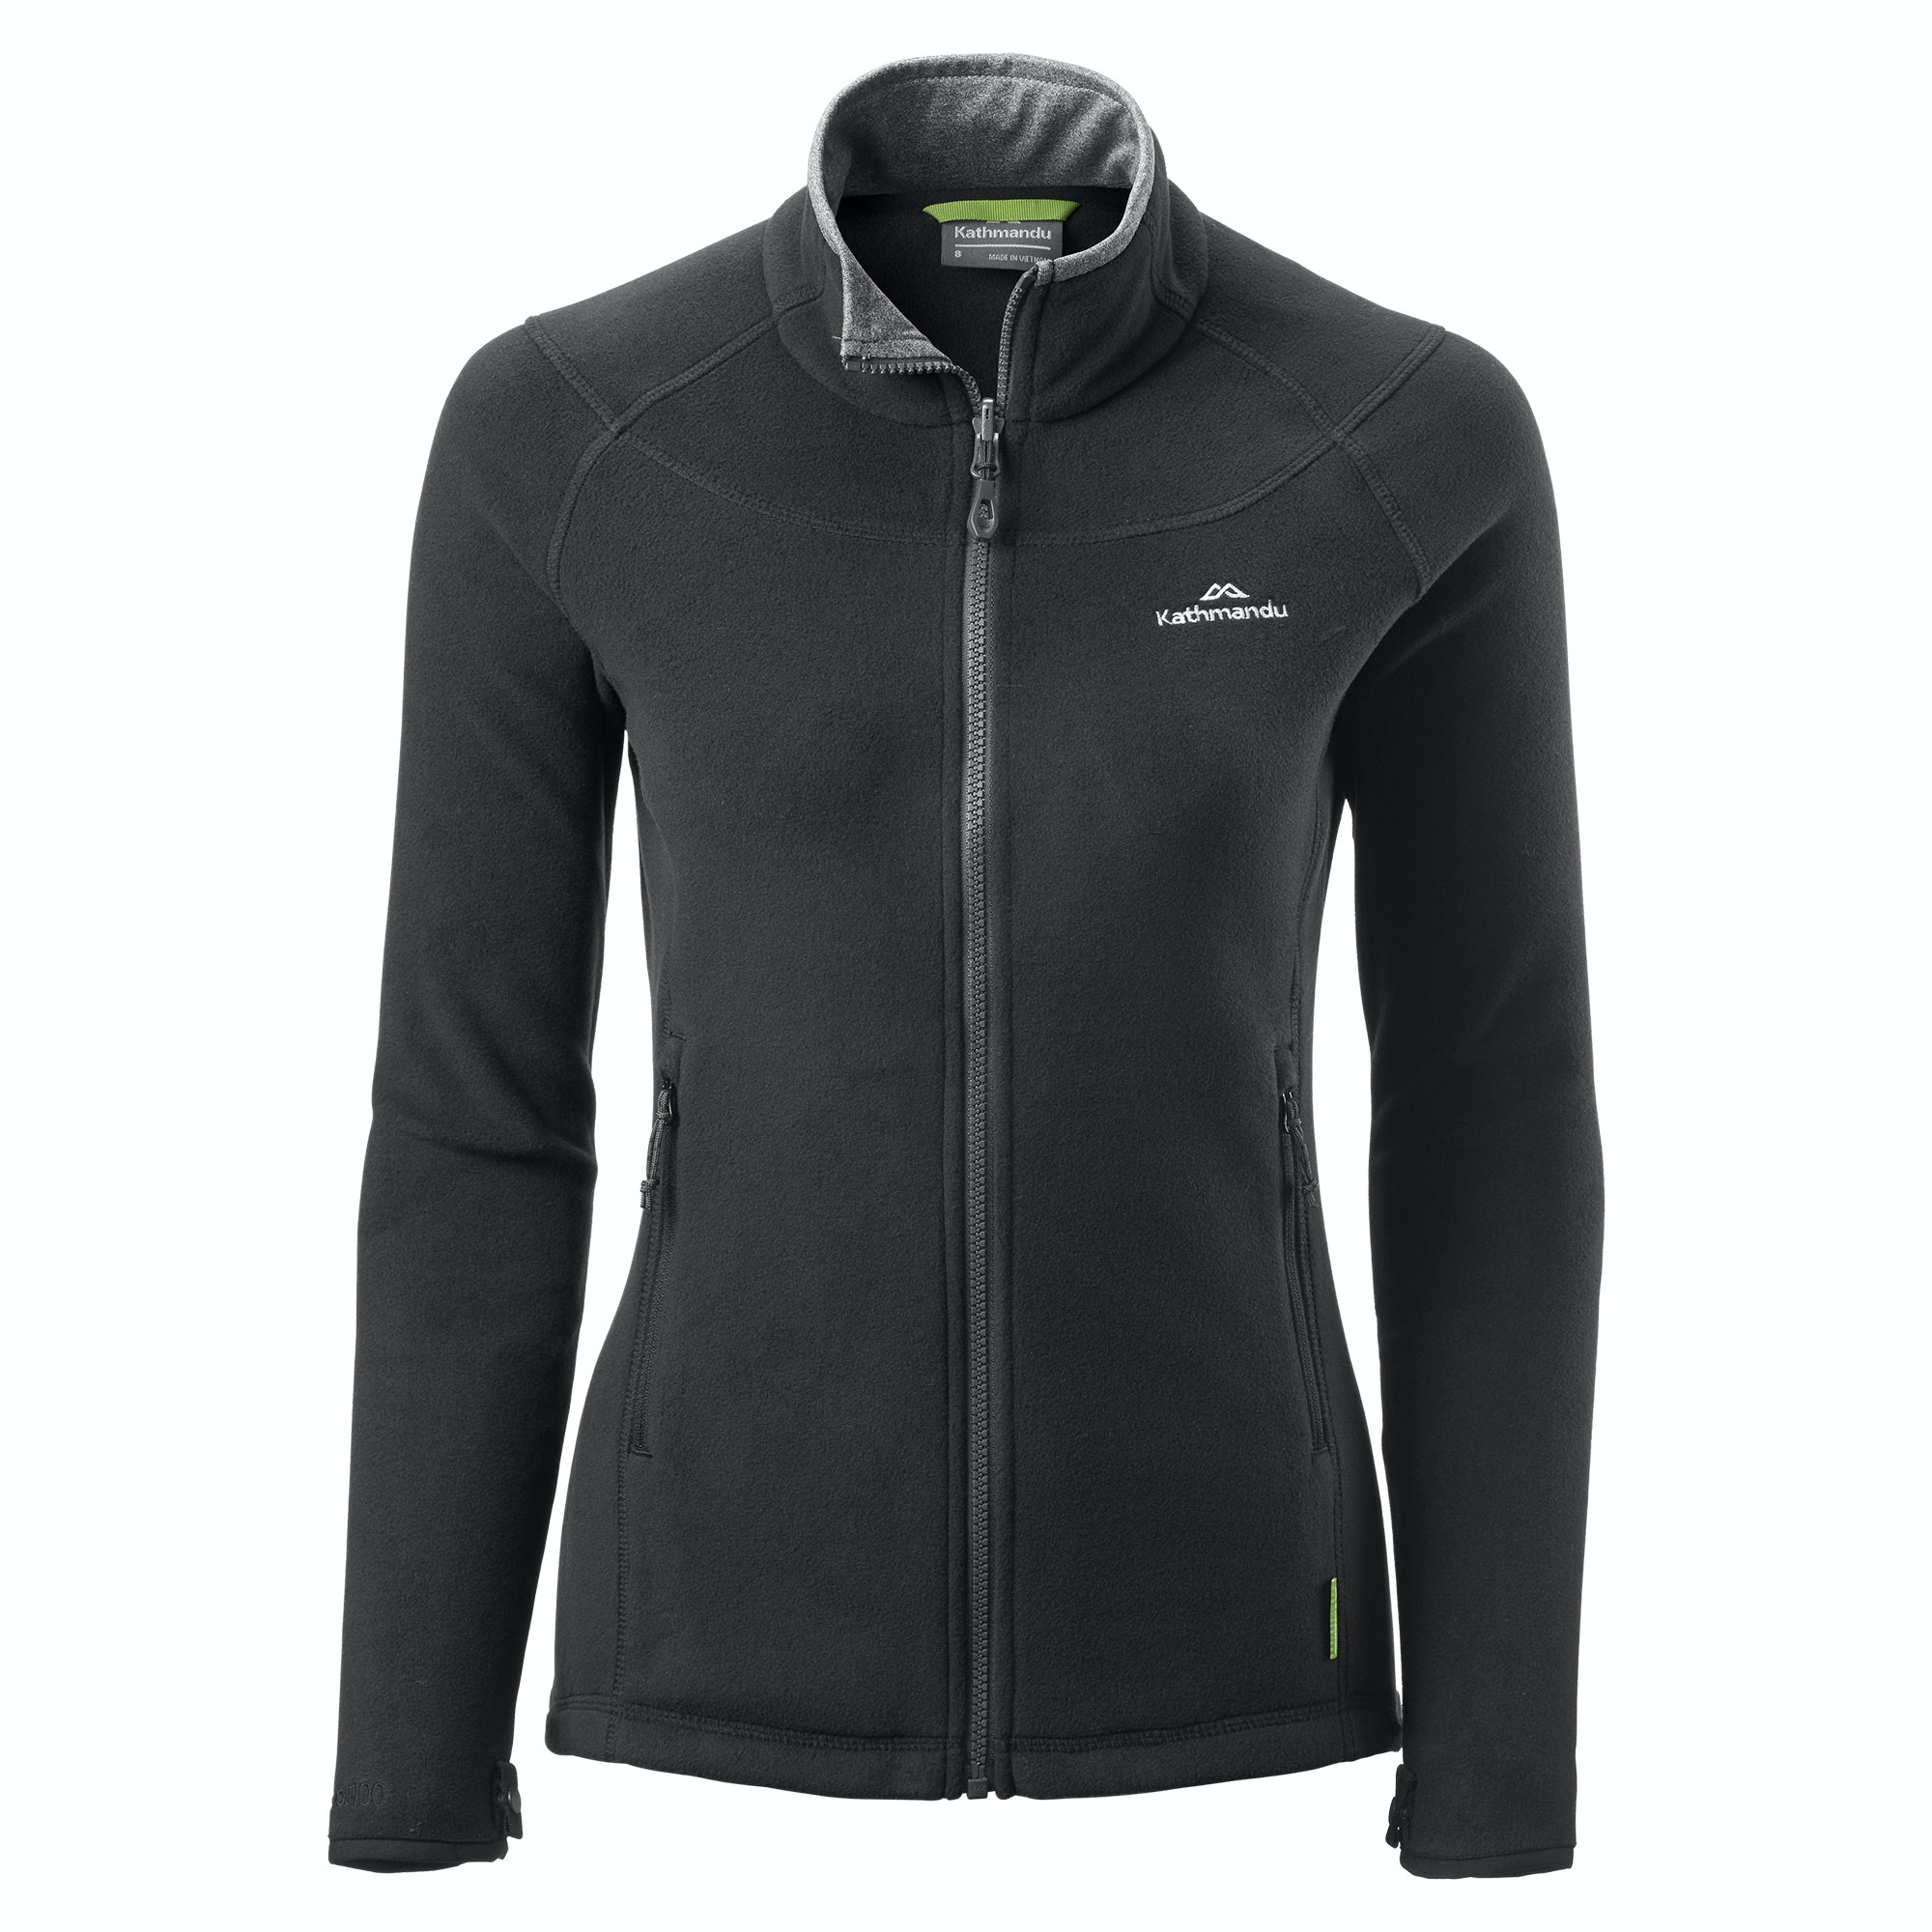 New Kathmandu Trailhead Women S High Collar Full Zip Warm